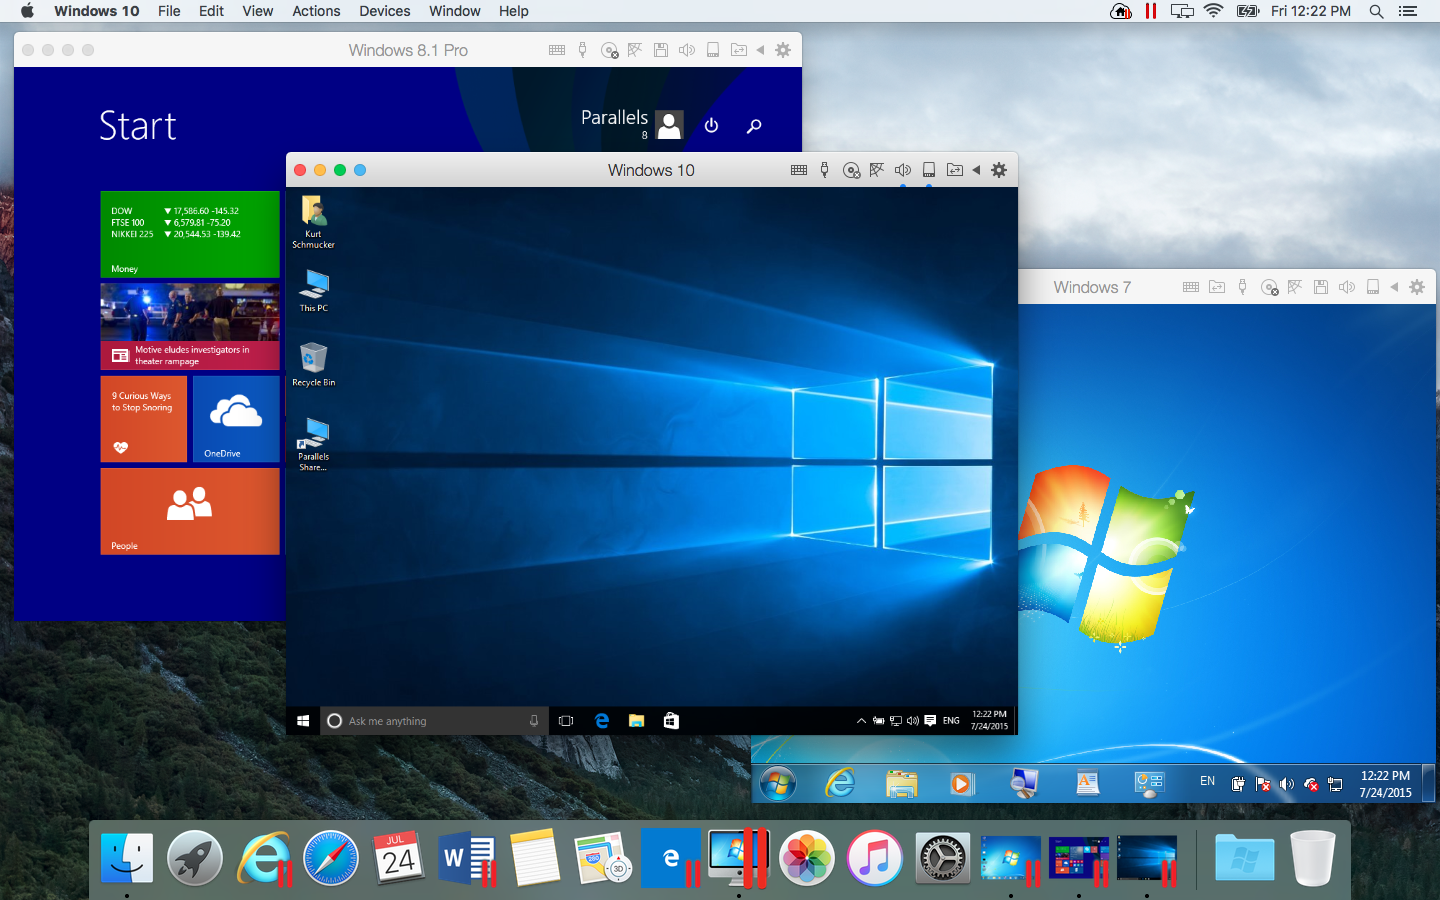 Parallels Desktop 16.1.2 Build 49151 Crack With License Key Latest Version Download 2021